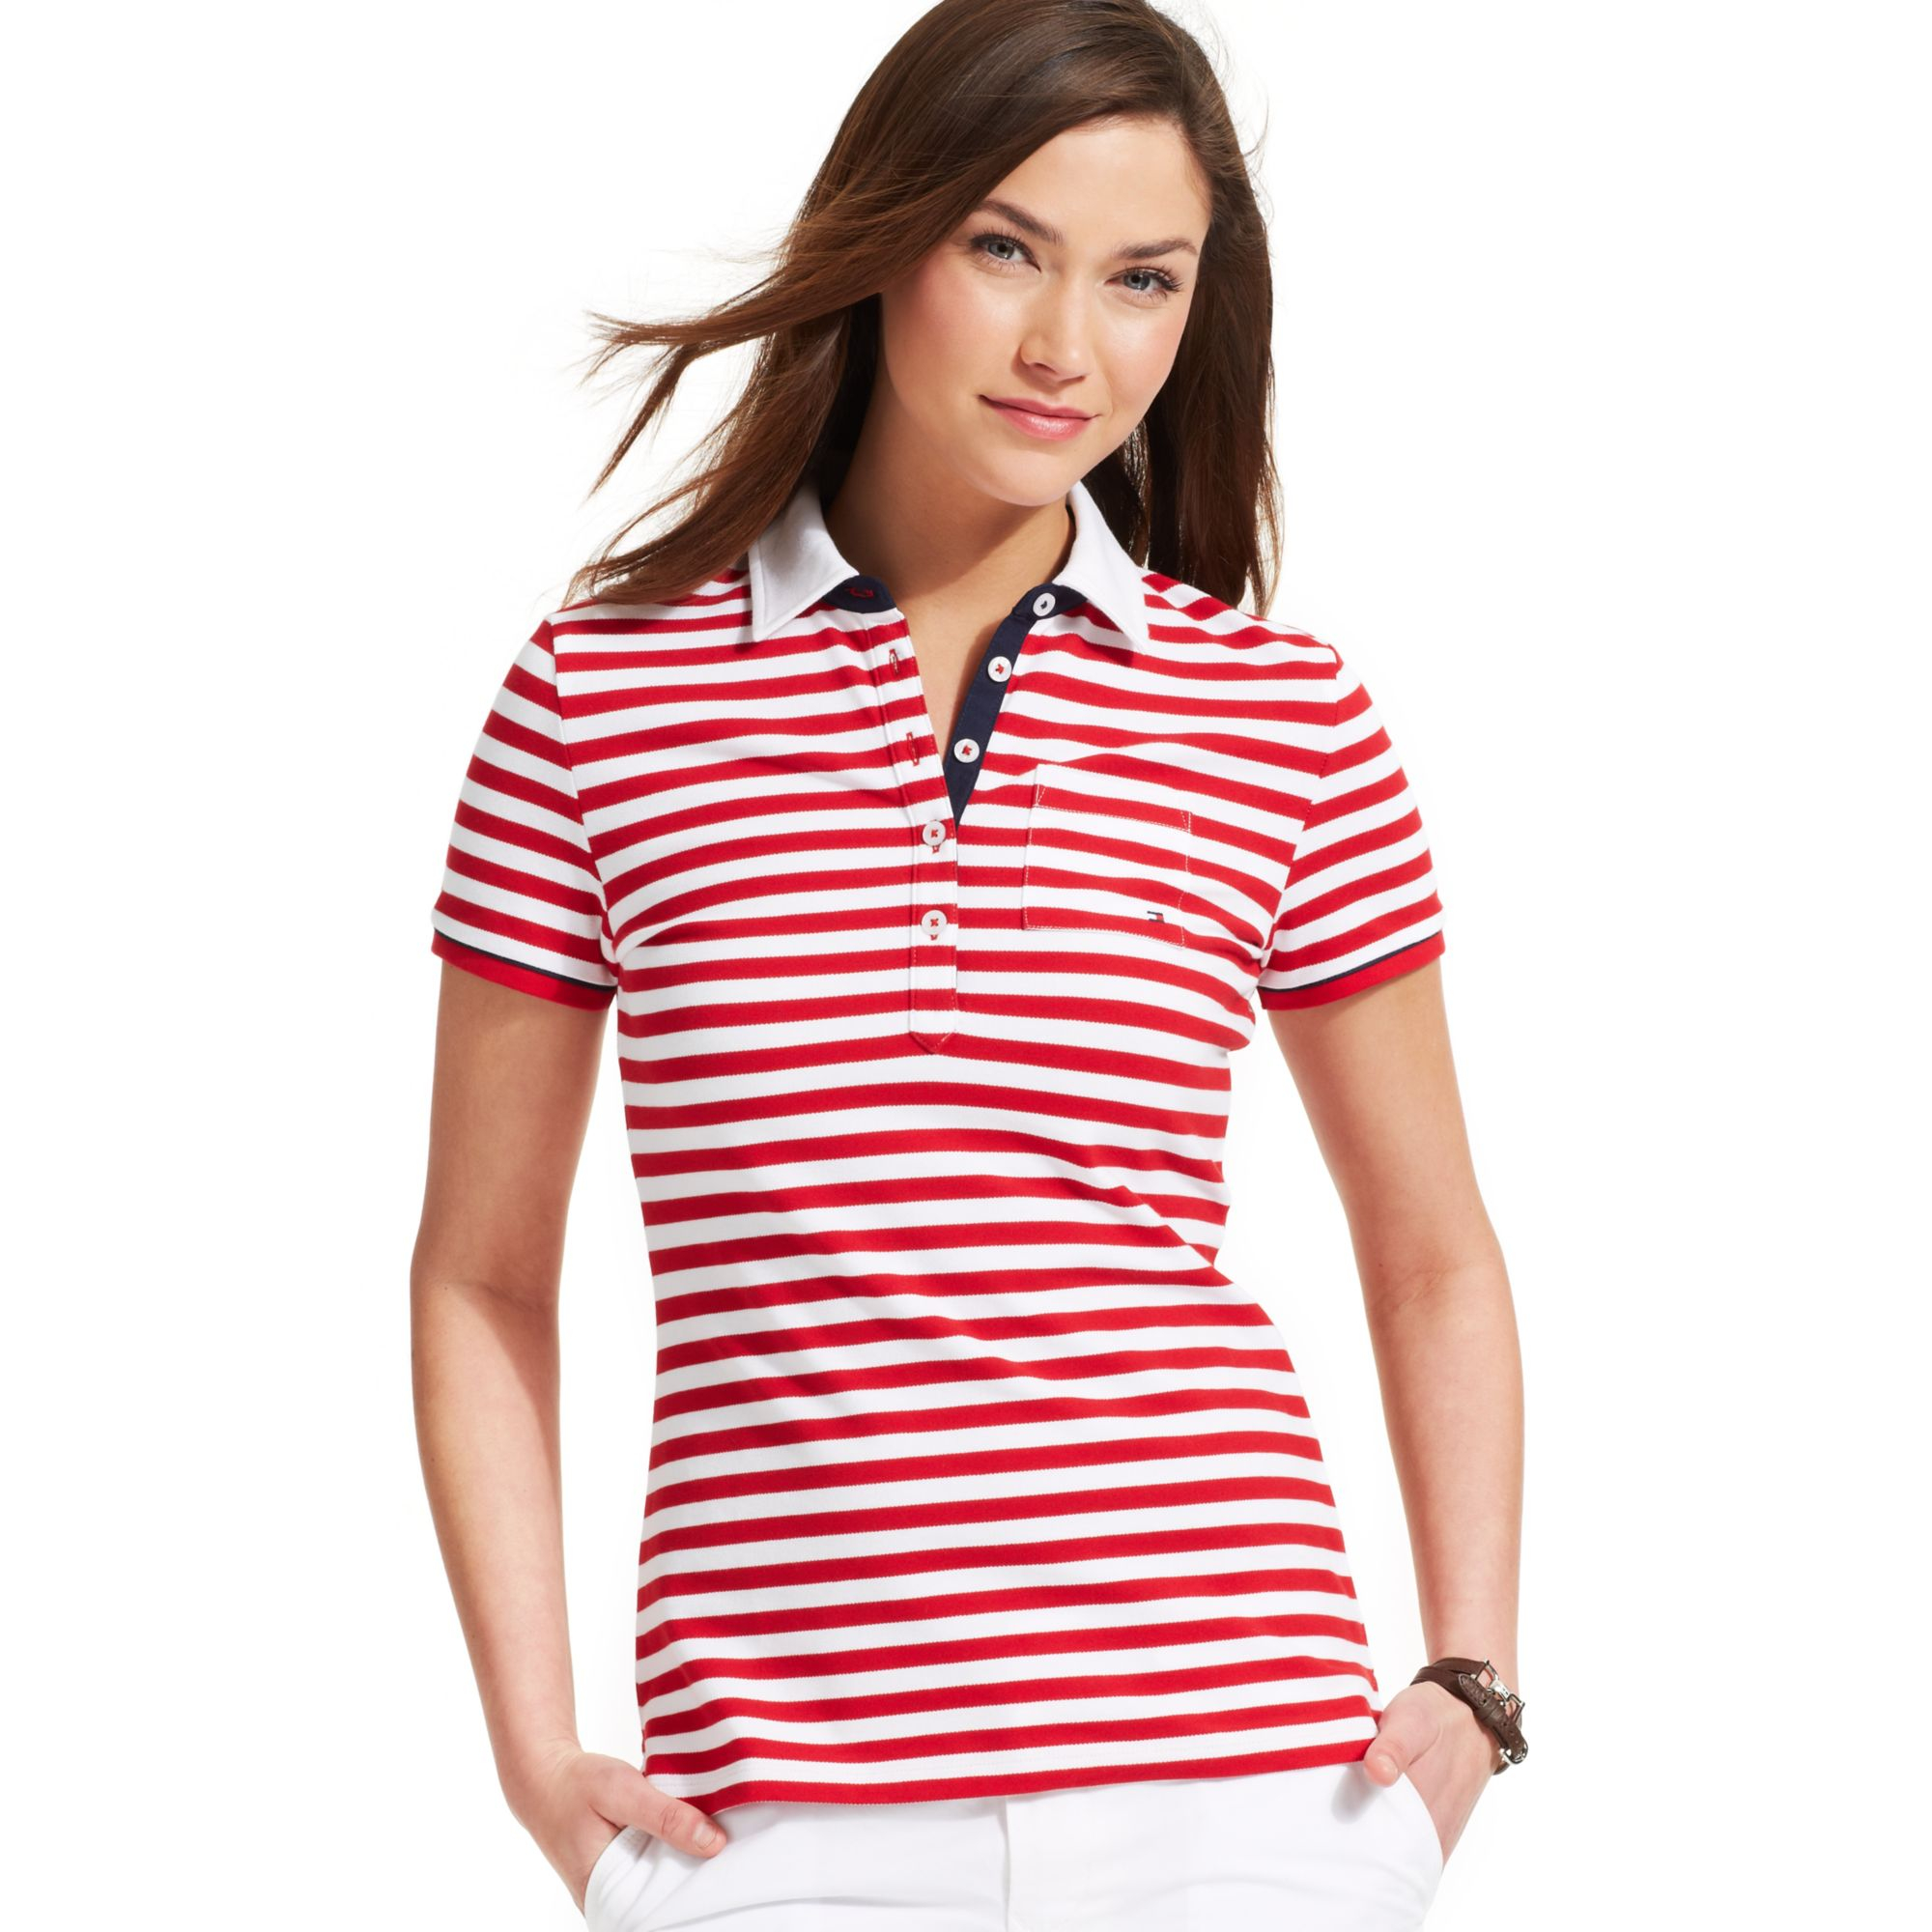 Tommy Hilfiger Short Sleeve Striped Contrast Trim Polo in